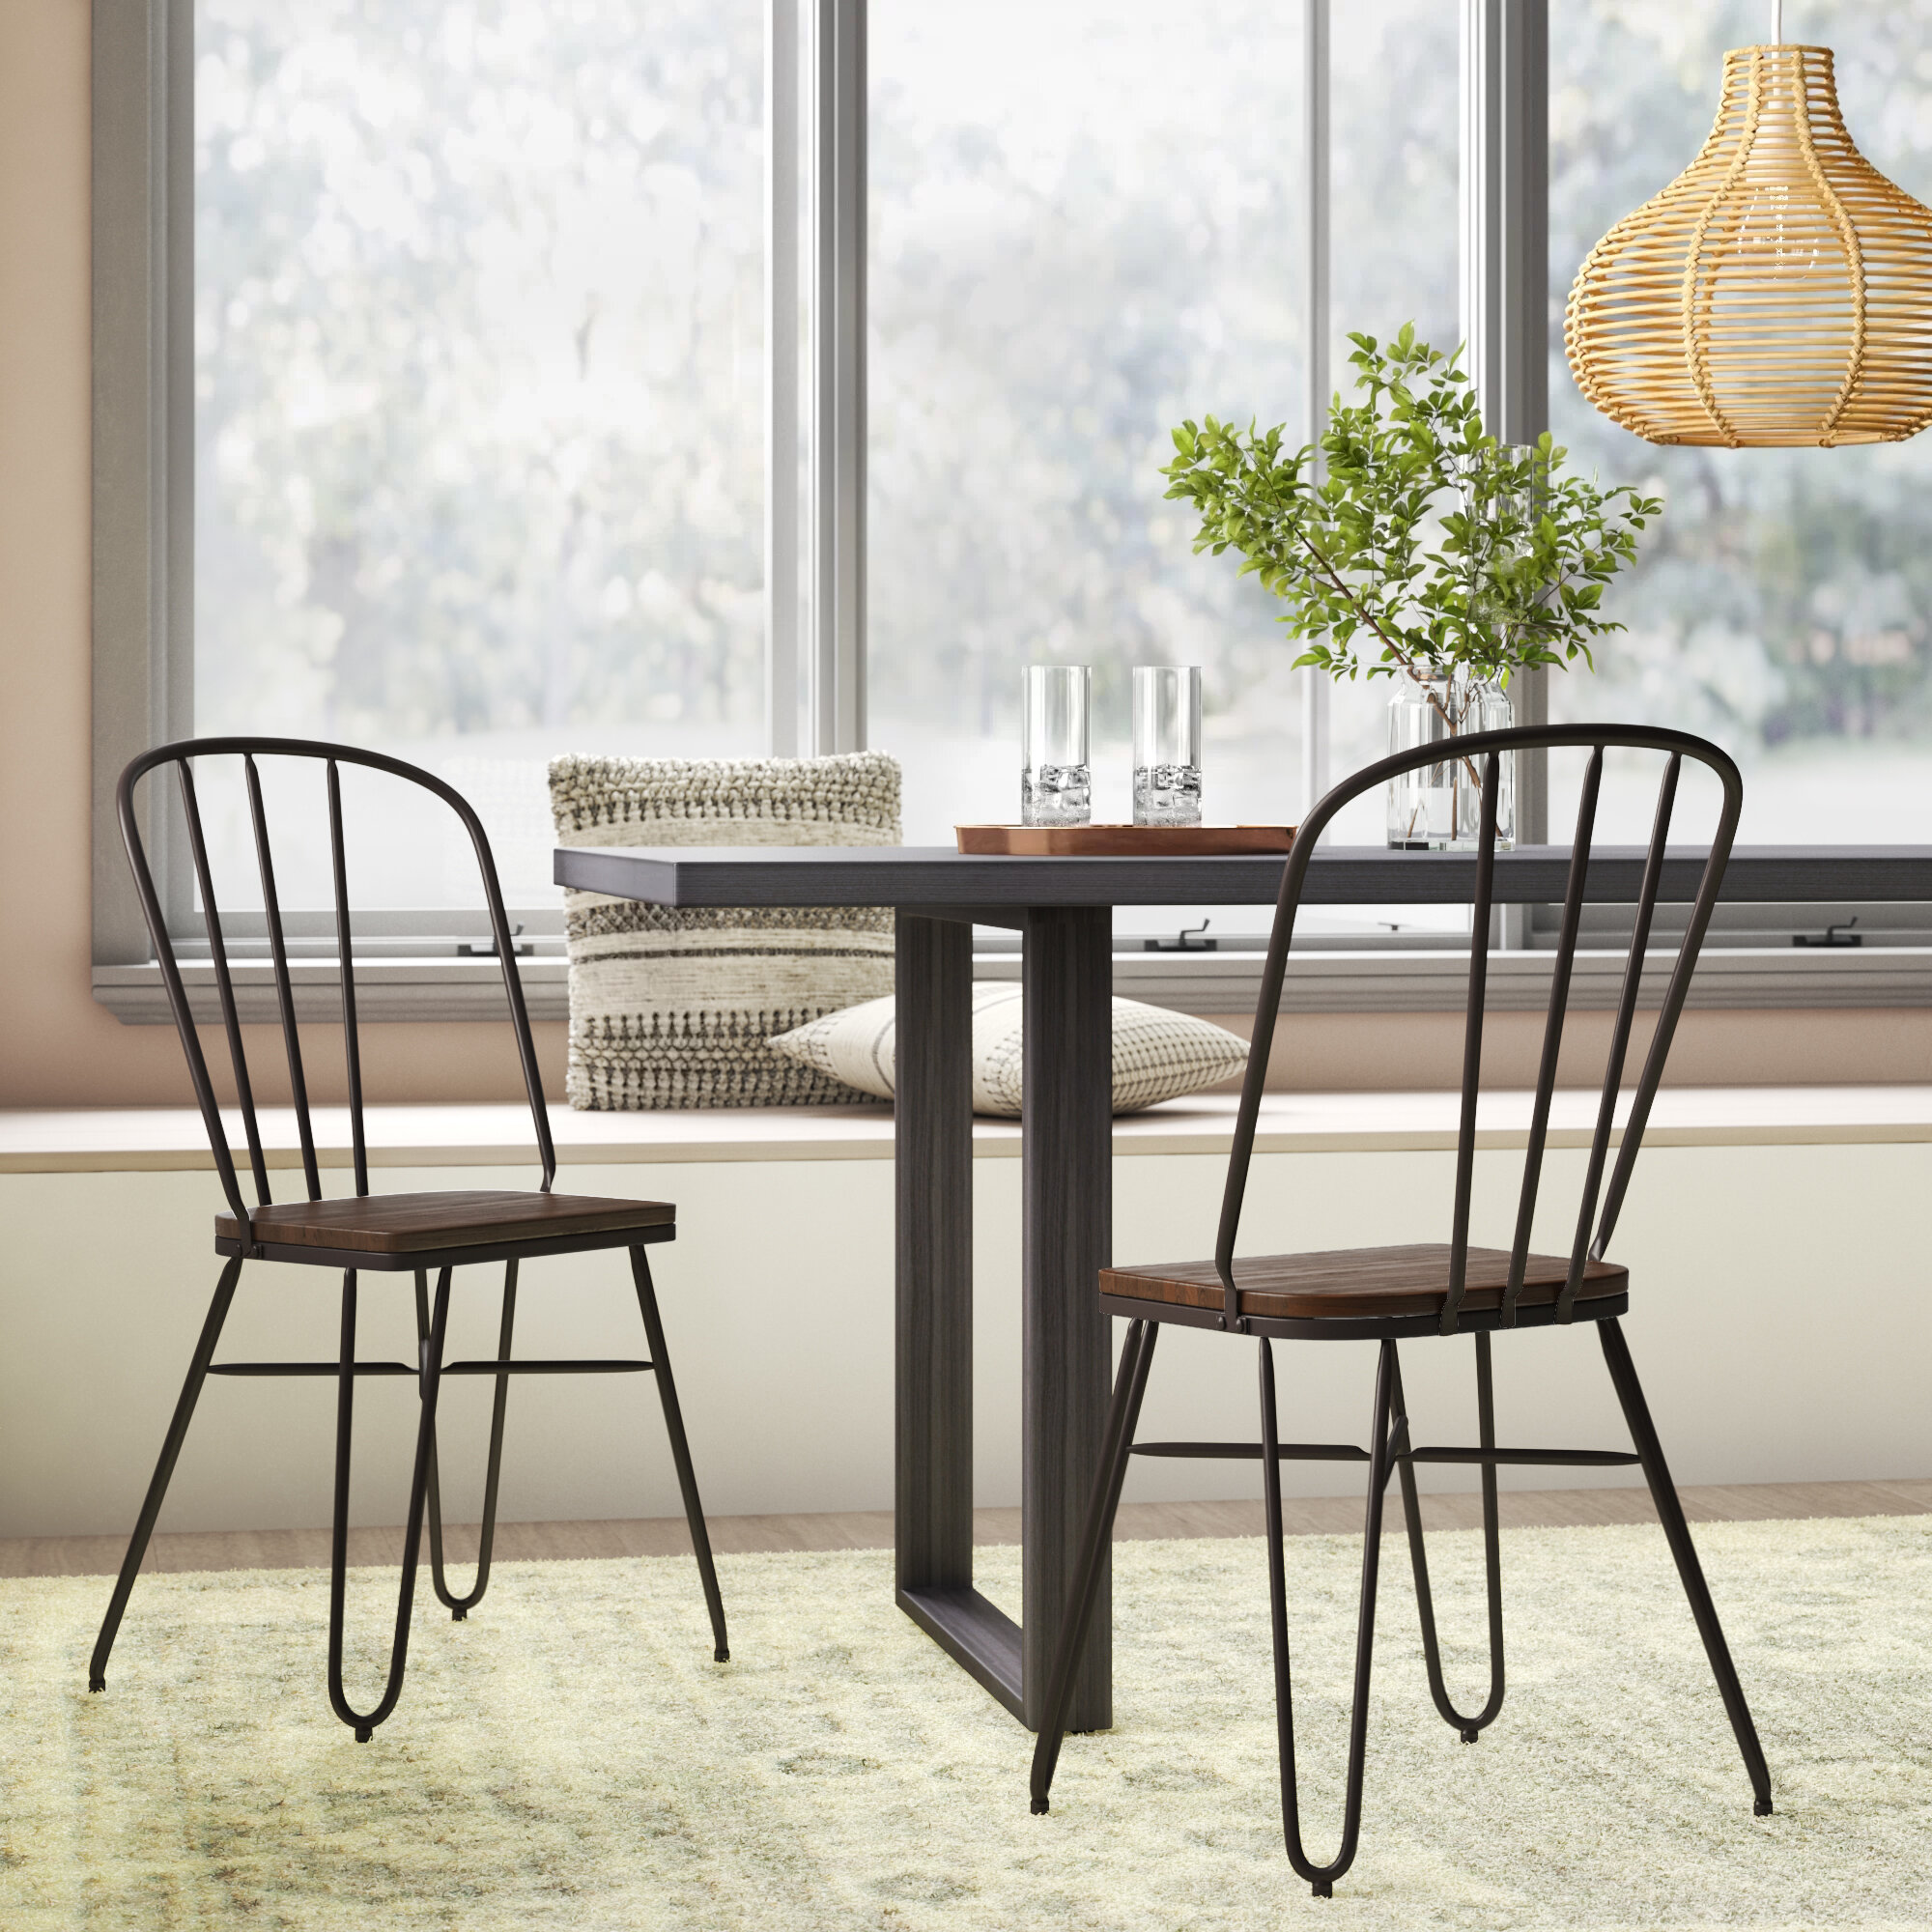 New Ideas Dining Chair Industrial